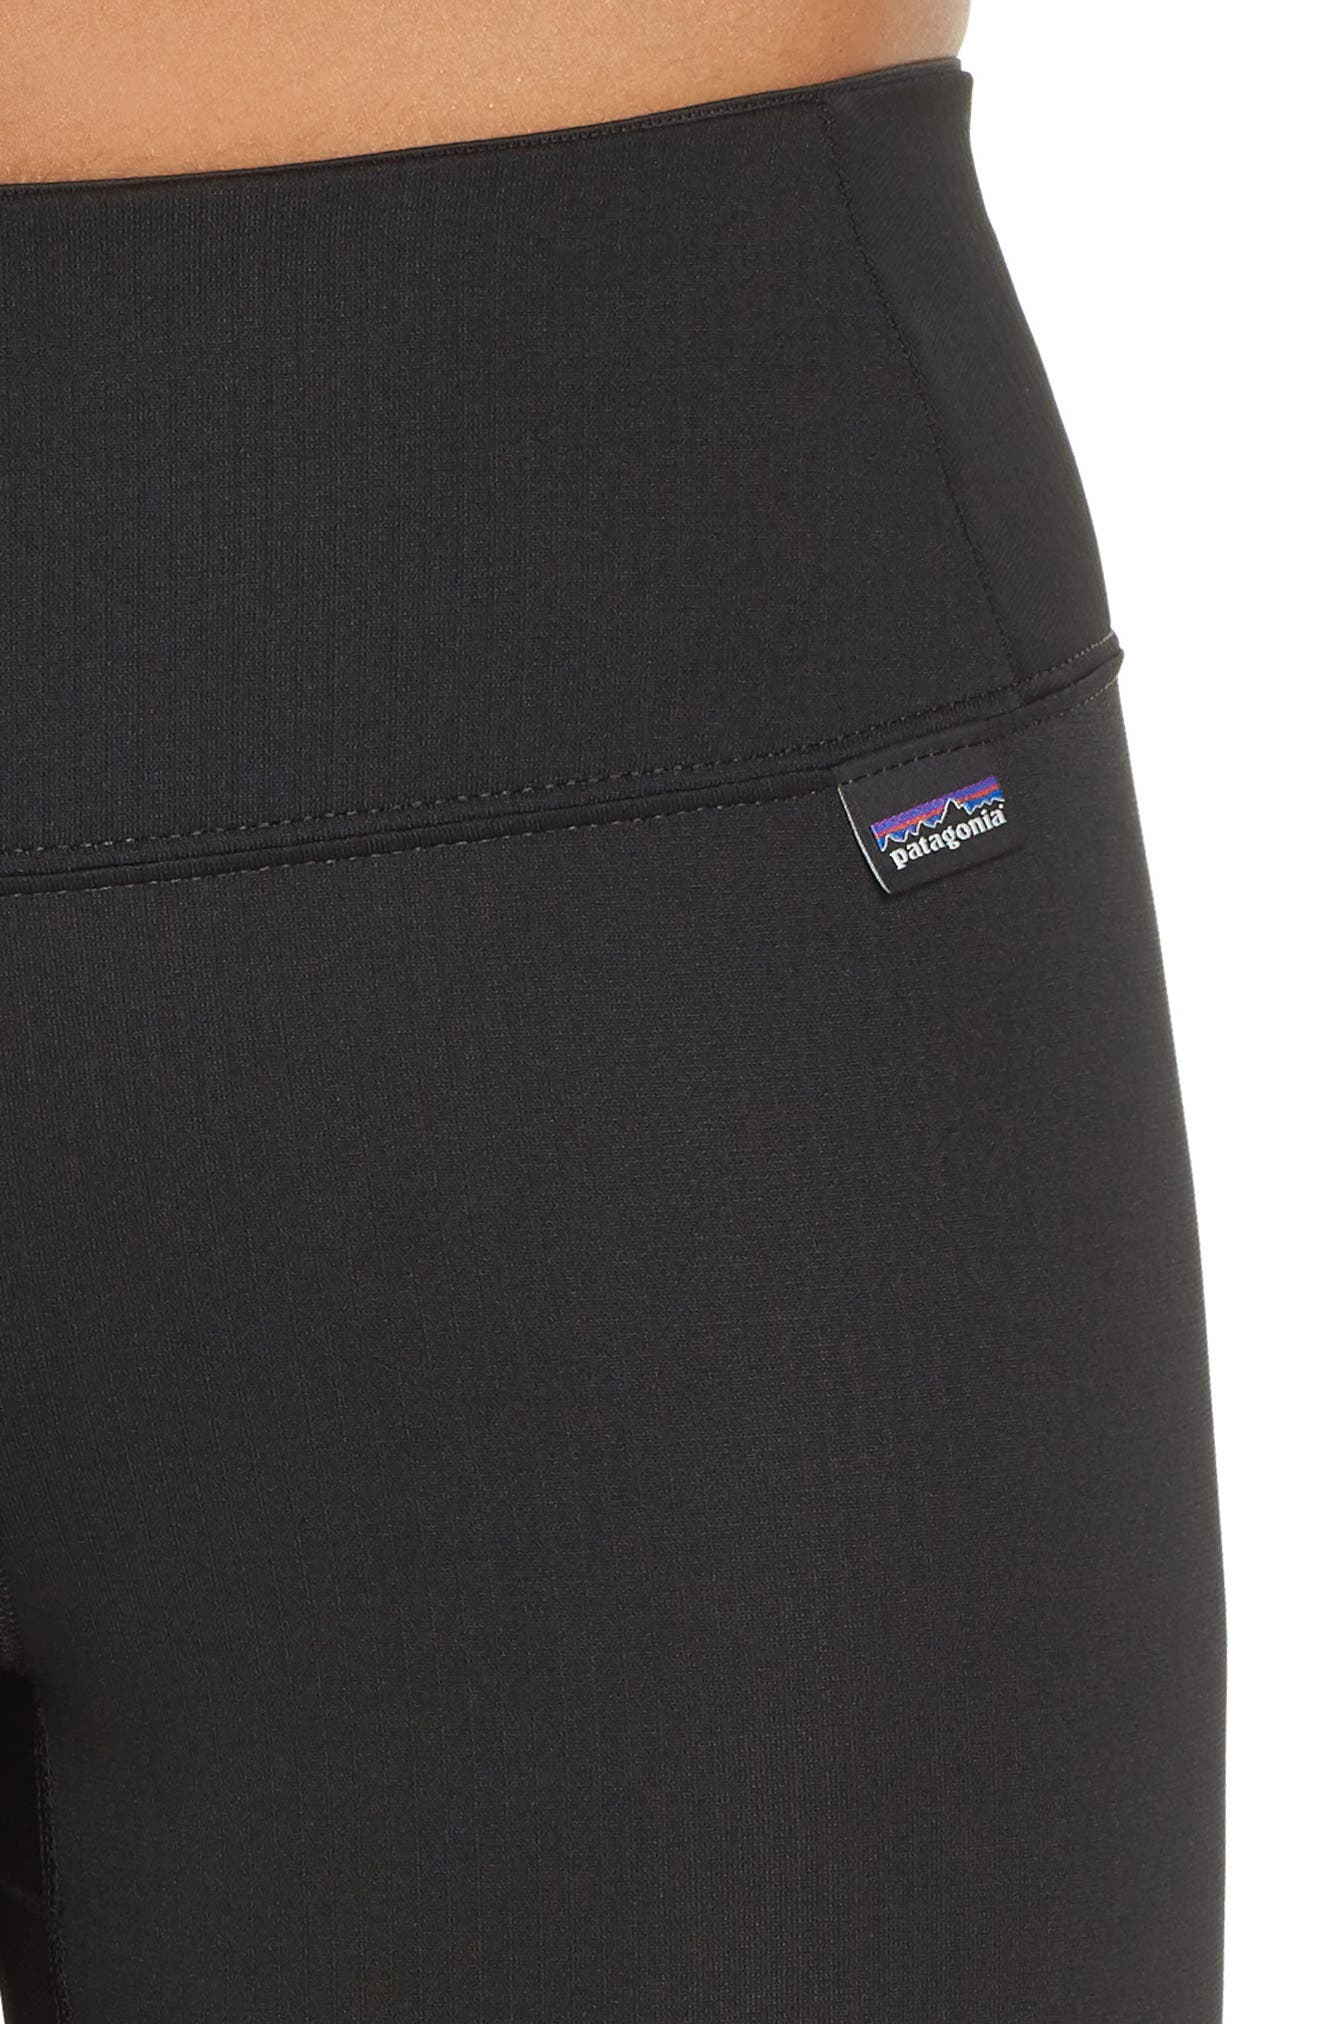 Capilene Midweight Base Layer Tights,                             Alternate thumbnail 4, color,                             BLACK